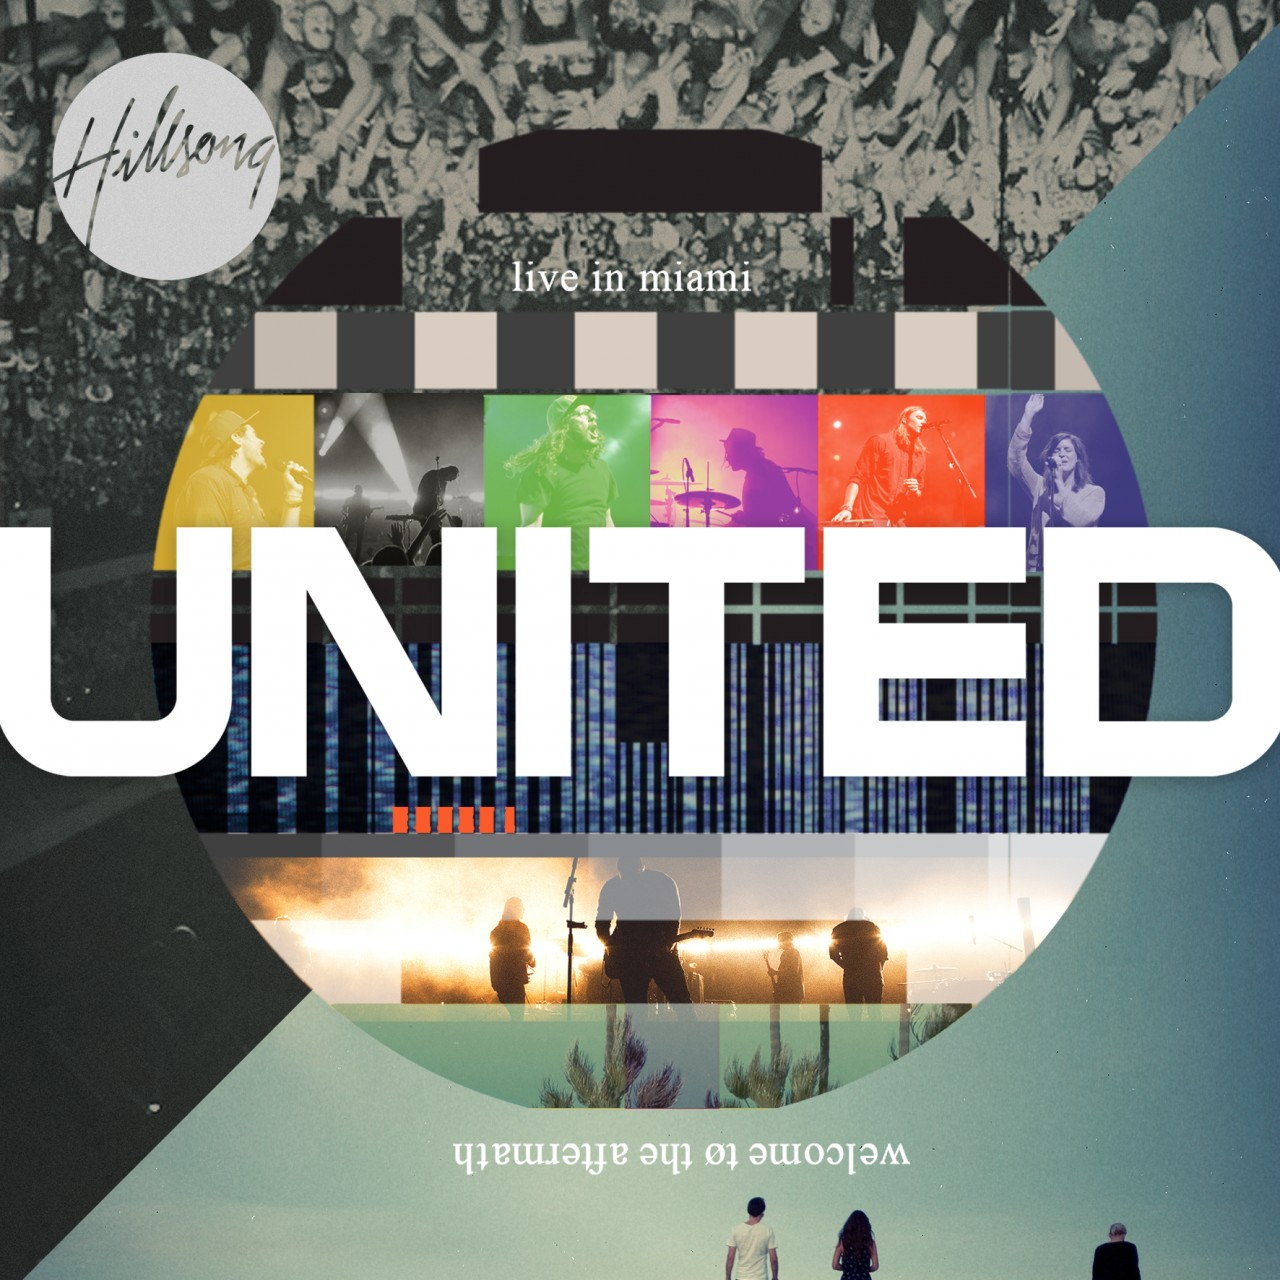 HILLSONG UNITED - LIVE IN MIAMI  2012  NEW ALBUMHillsong United 2012